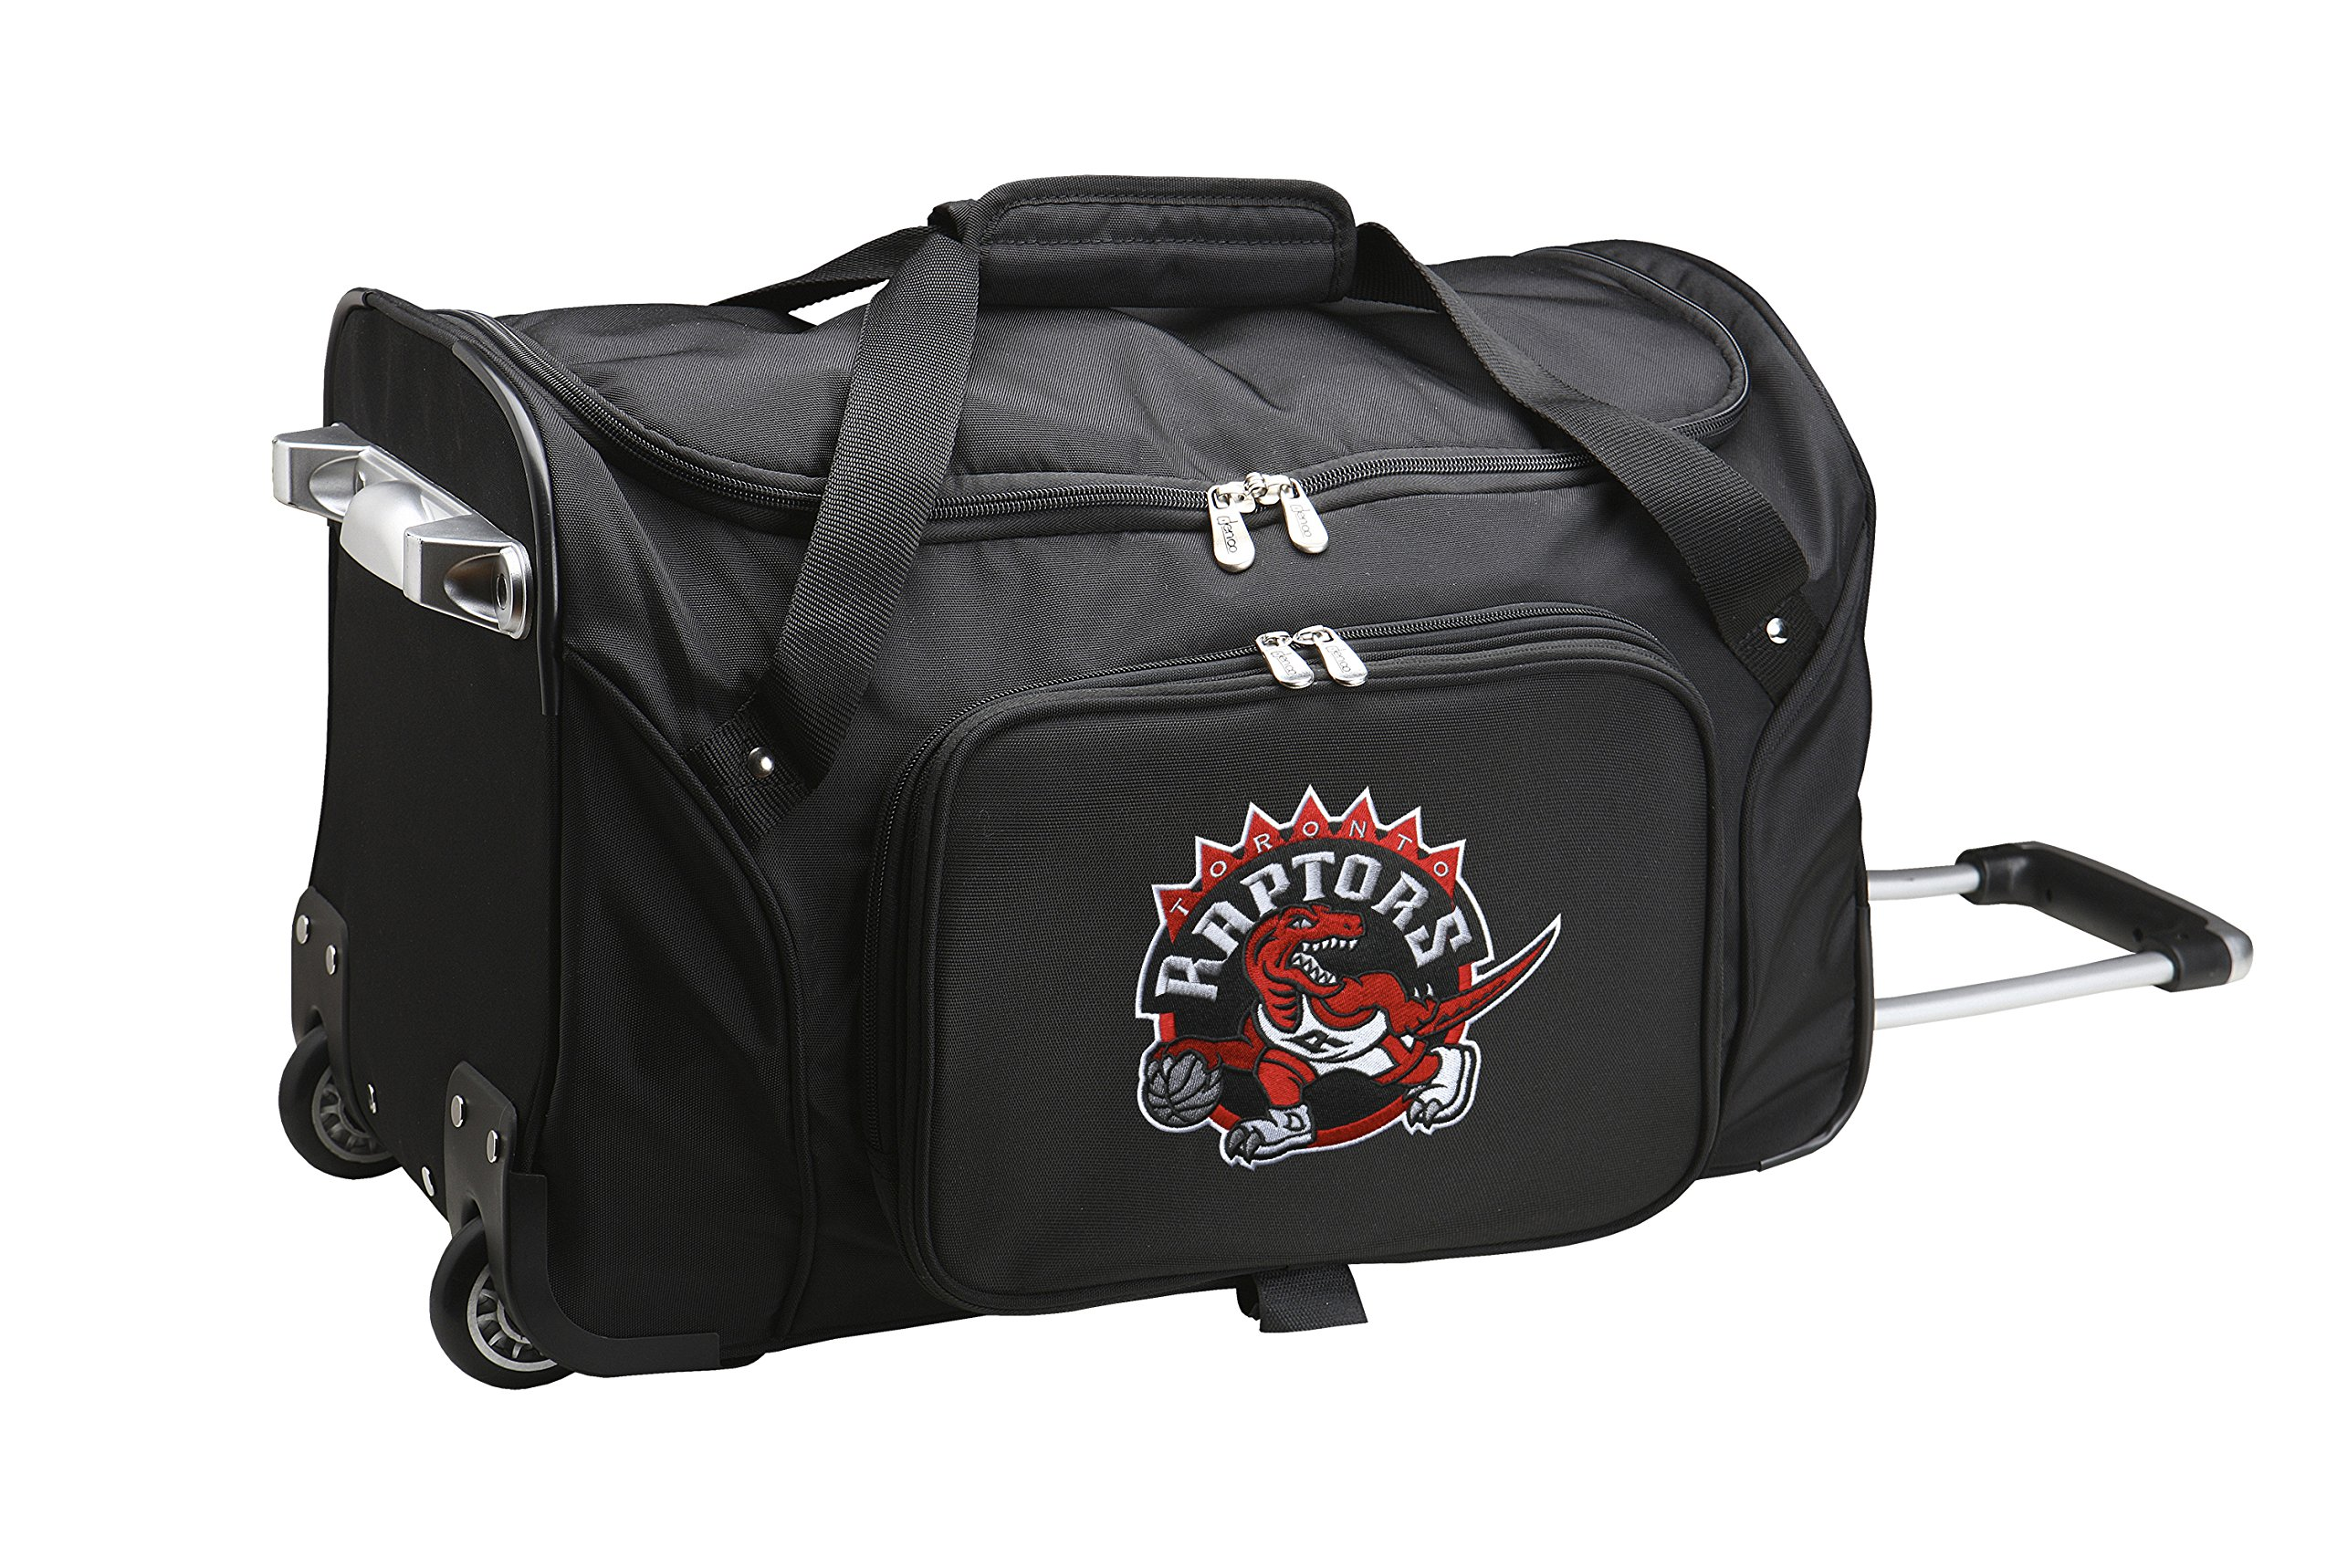 NBA Toronto Raptors Wheeled Duffle Bag, 22 x 12 x 5.5'', Black